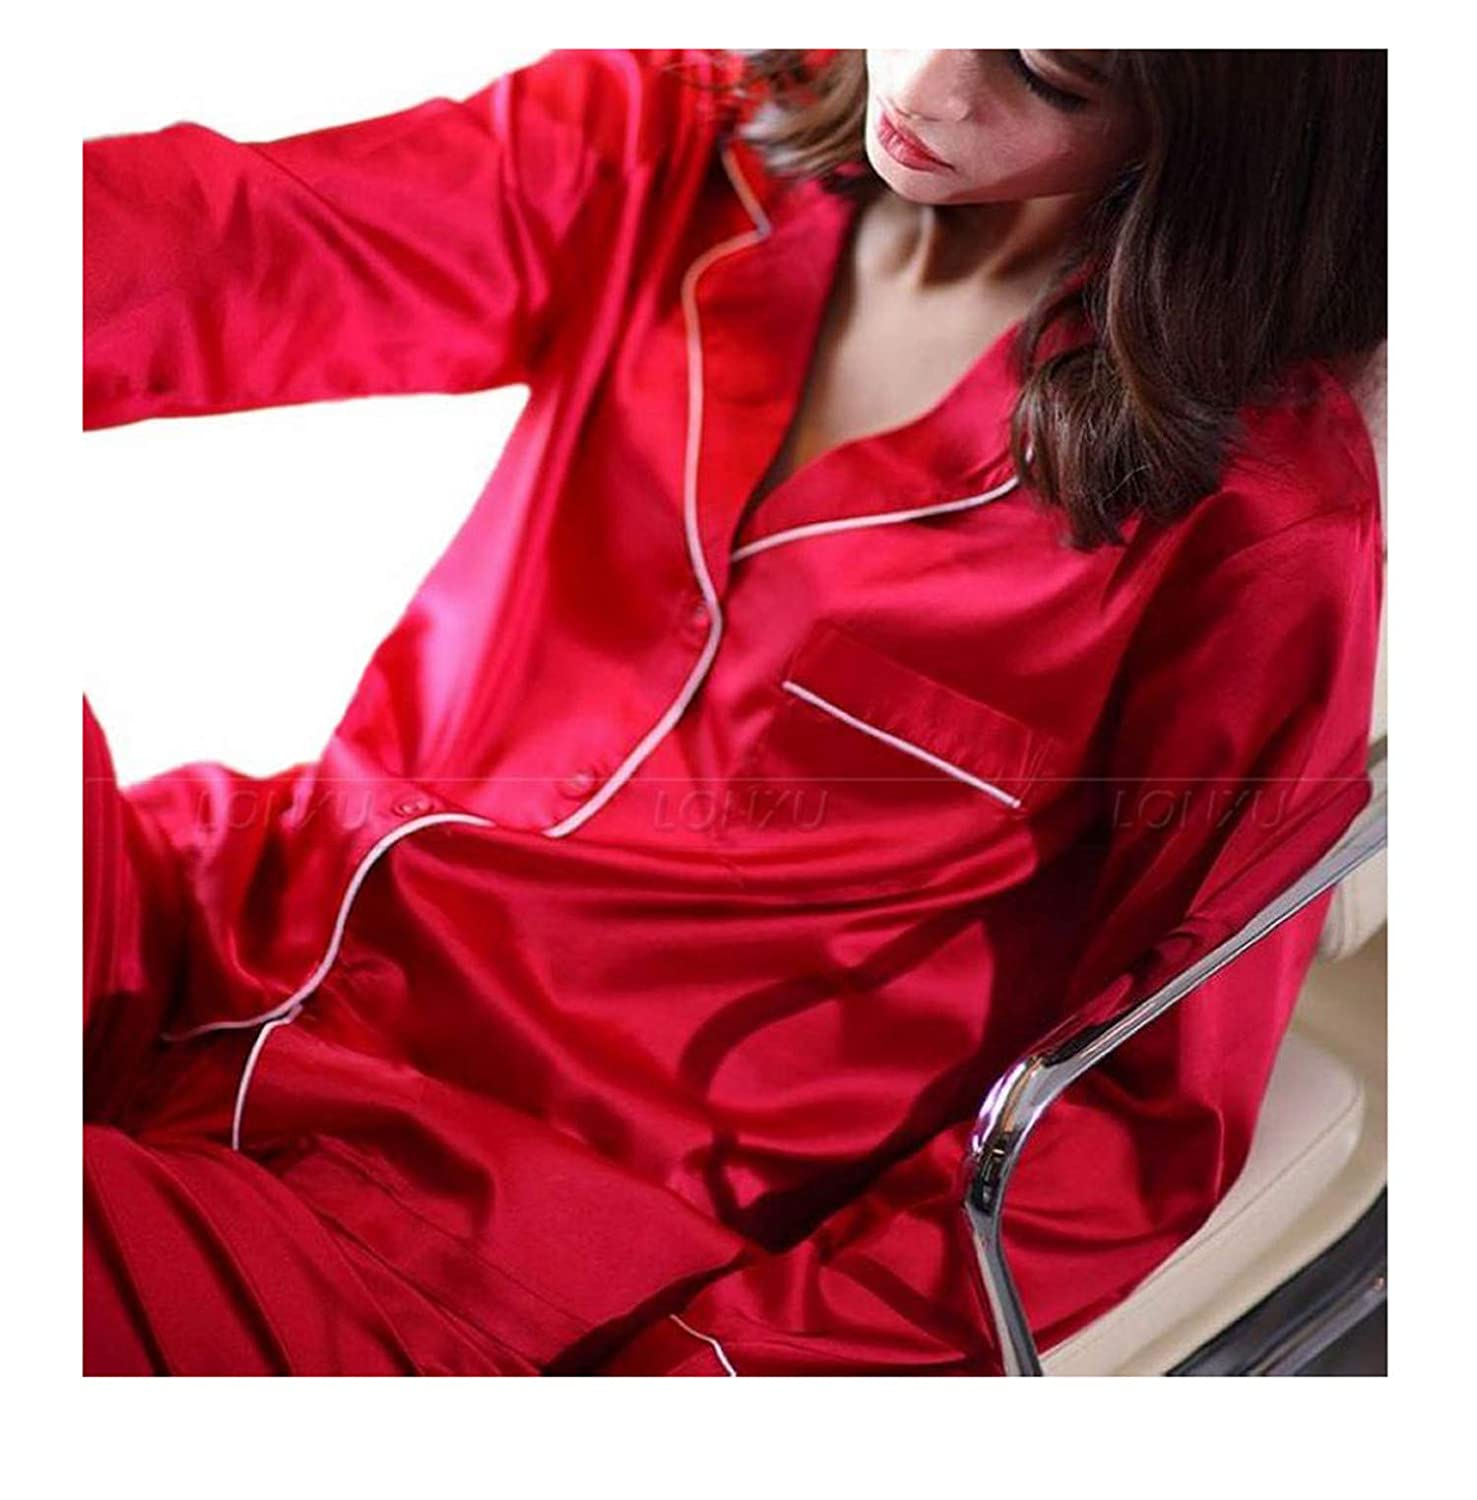 Rnhejingji Womens Silk Satin Pajamas Pyjamas Set Sleepwear Loungewear ~3XL Plus Size